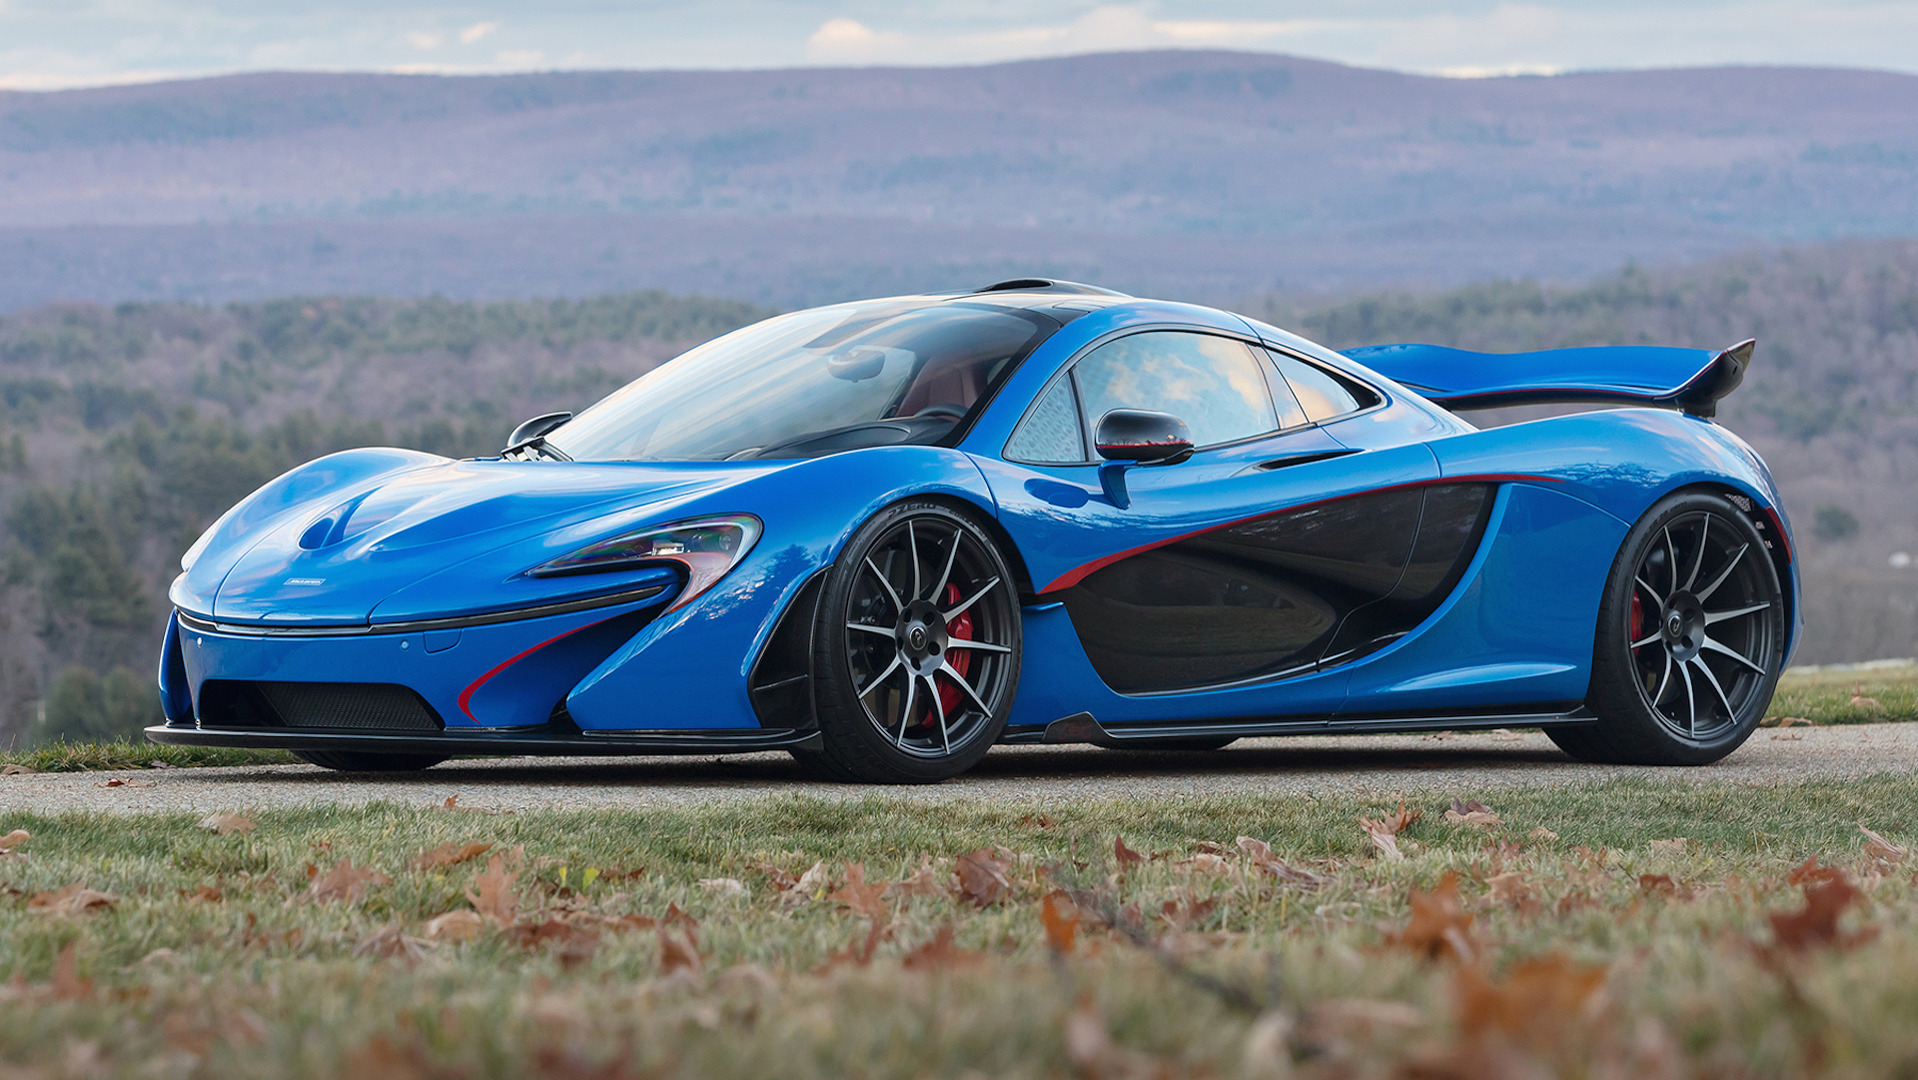 McLaren P1 Sells For $2.39M At Auction, The Most Expensive